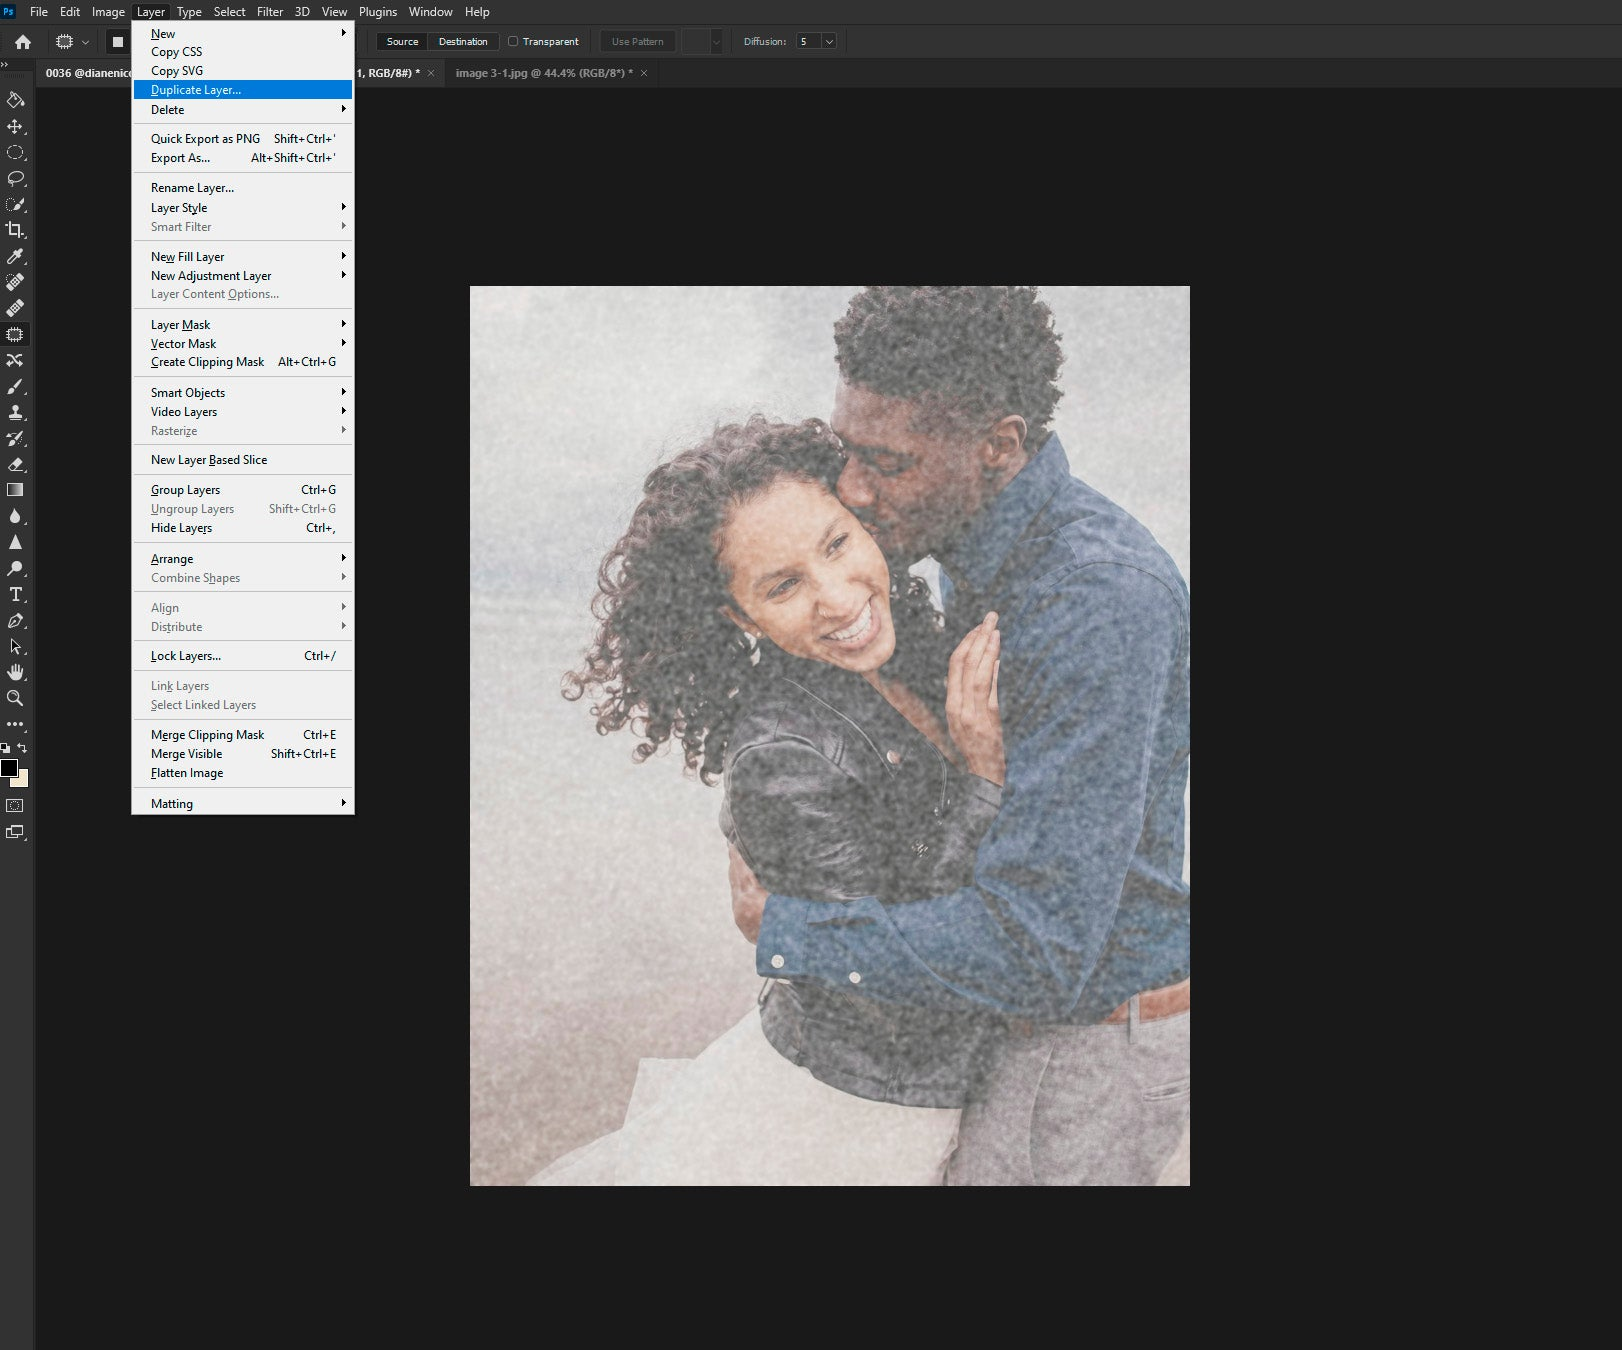 Duplicating the layer in Photoshop